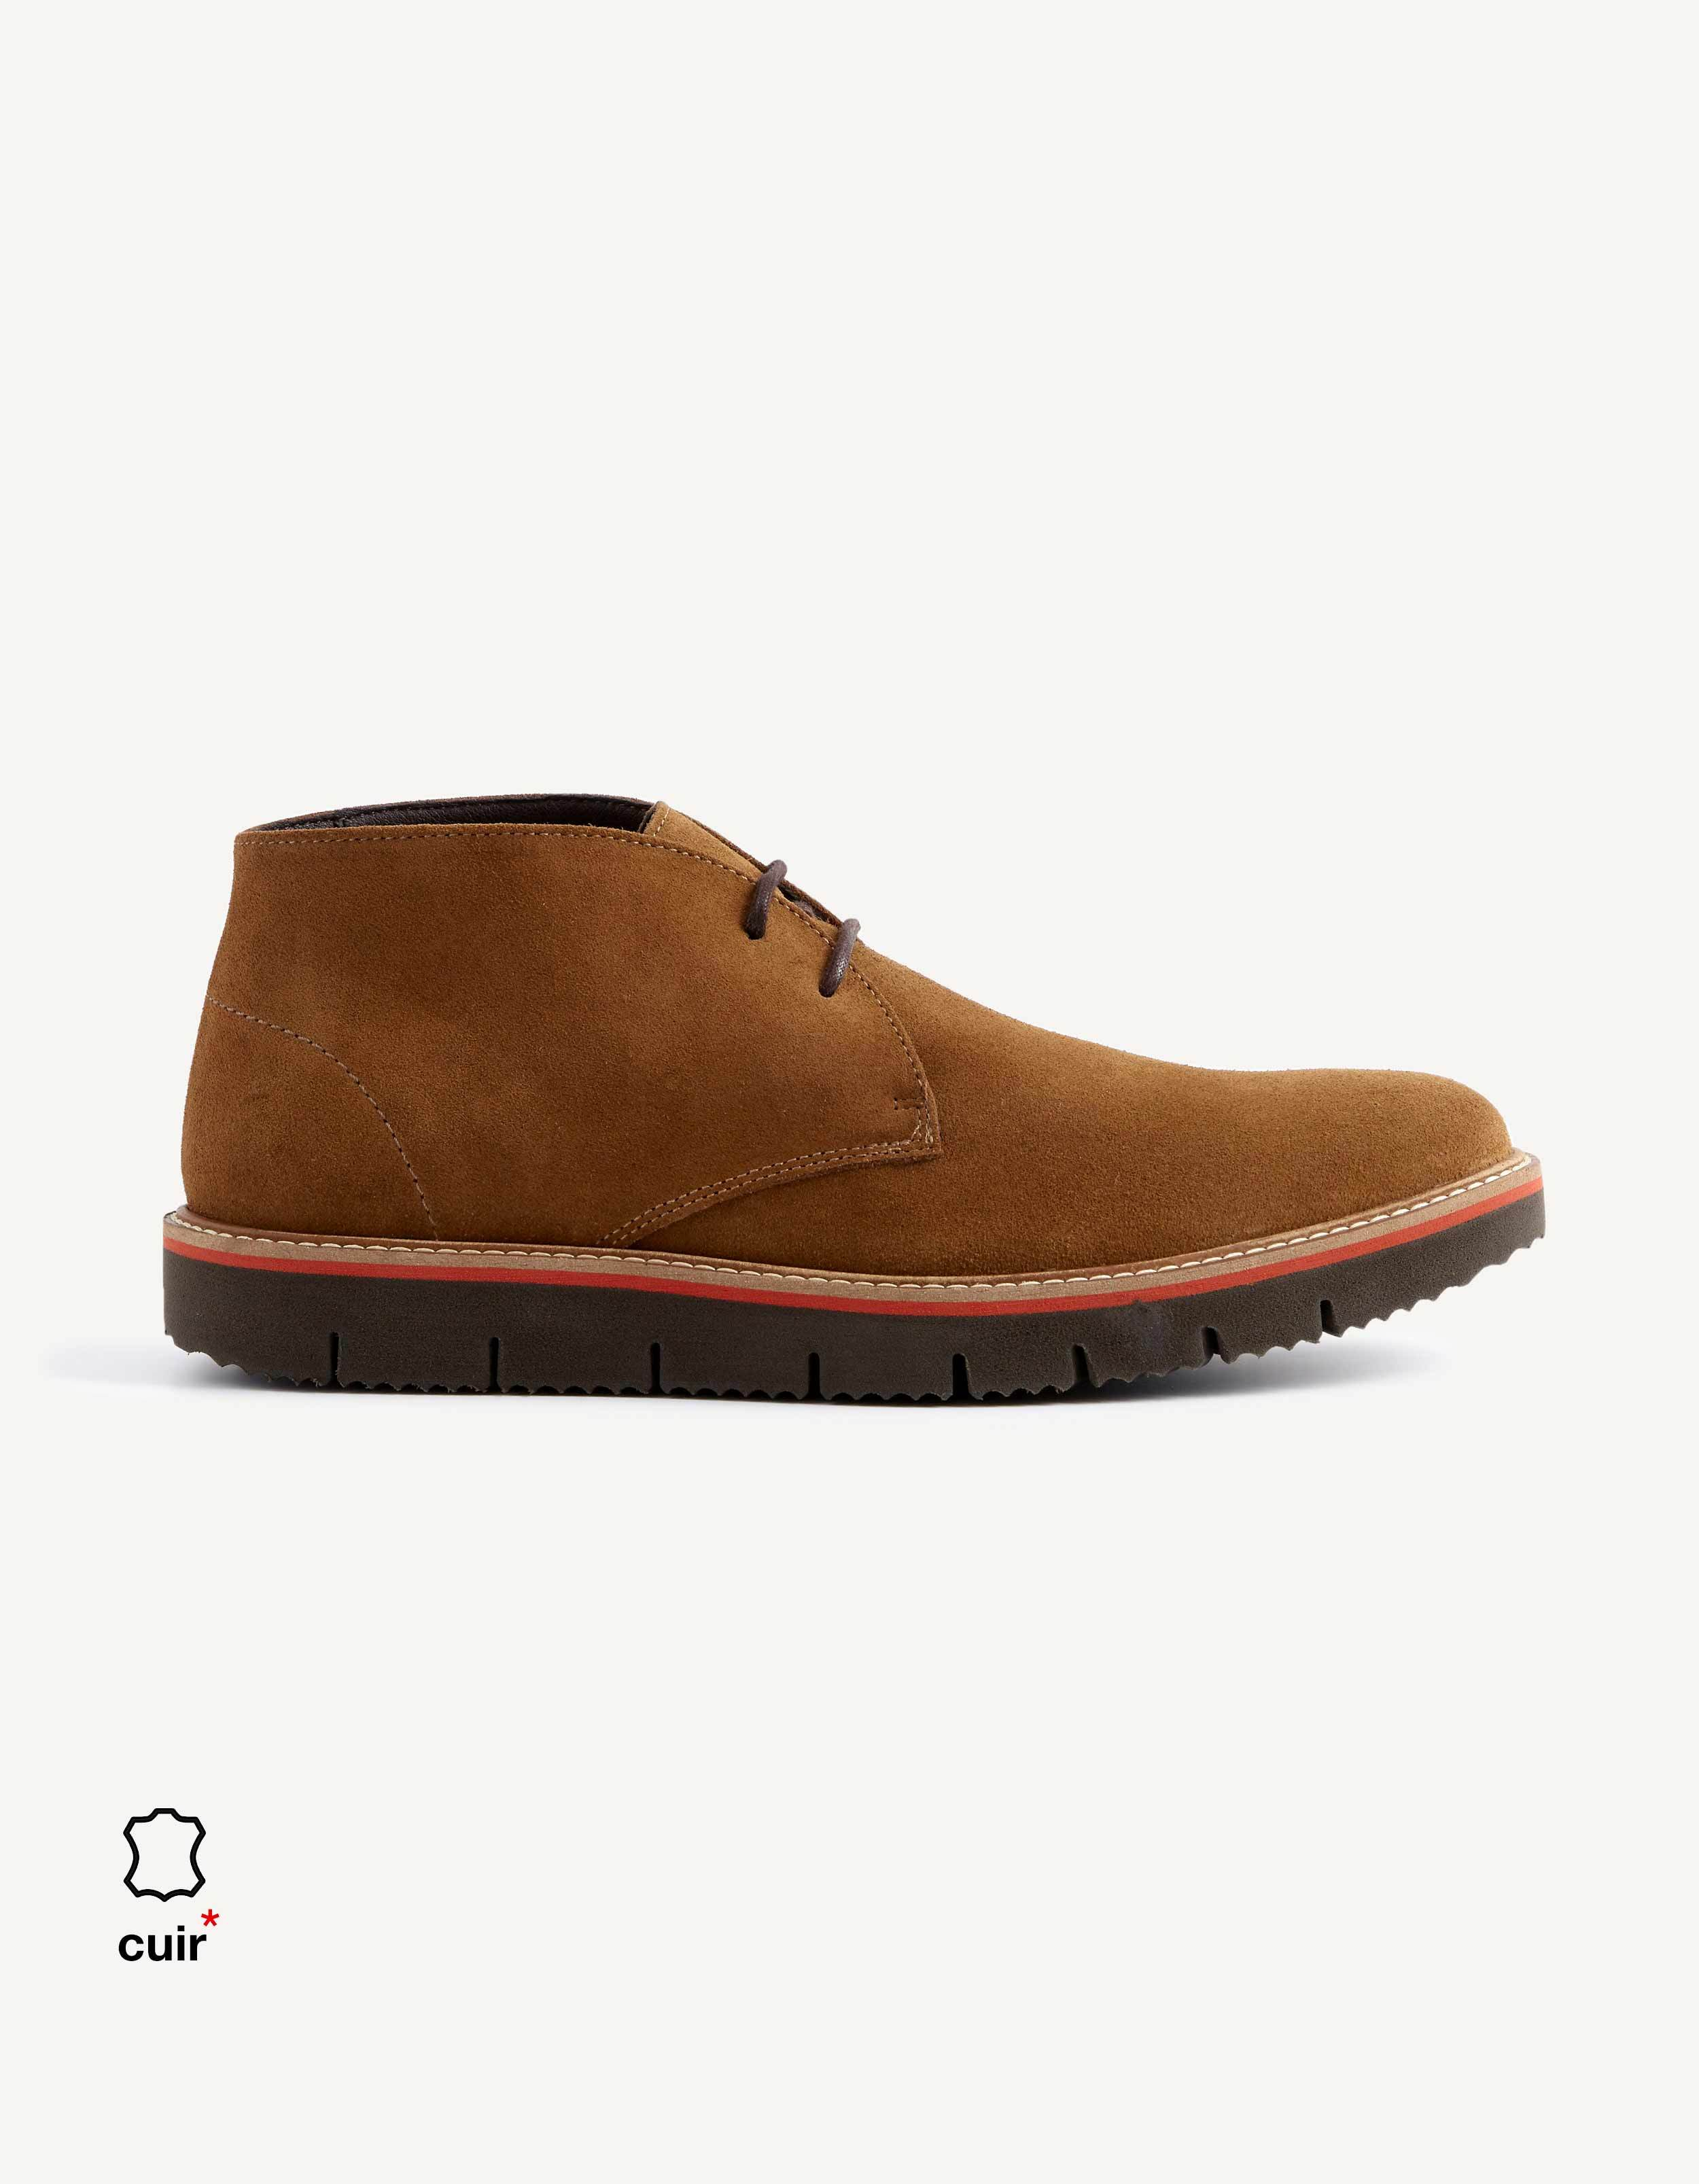 15bf96bb70 Boots semi-montante cuir - NYLAST_TAN - Image à plat - Celio France